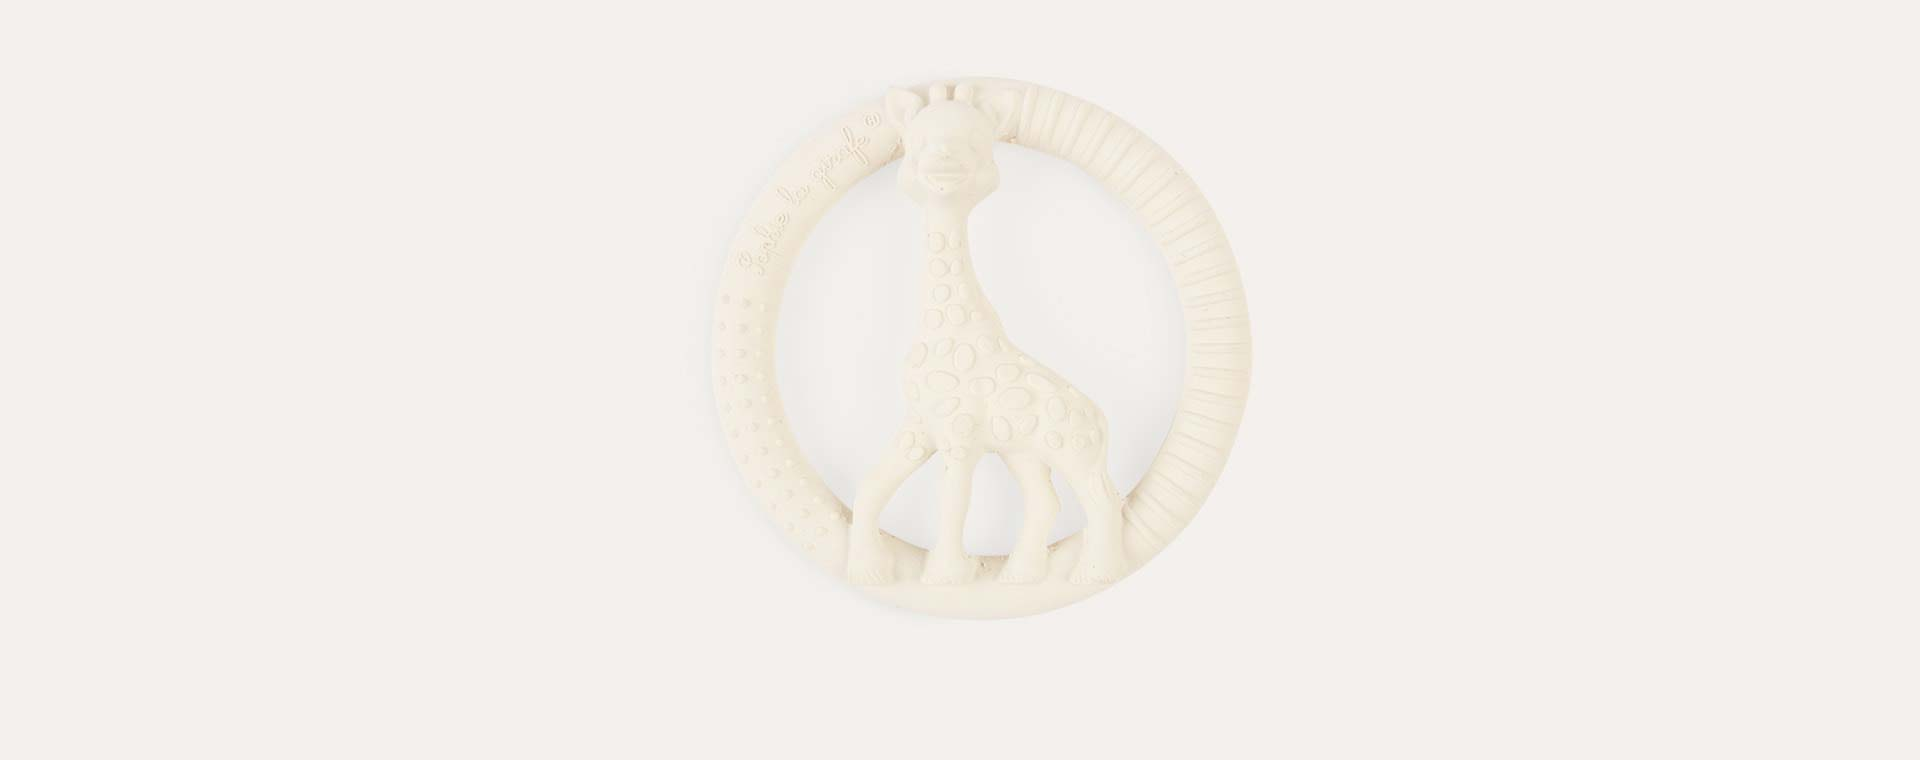 Neutral Sophie la girafe So Pure Circle Teether